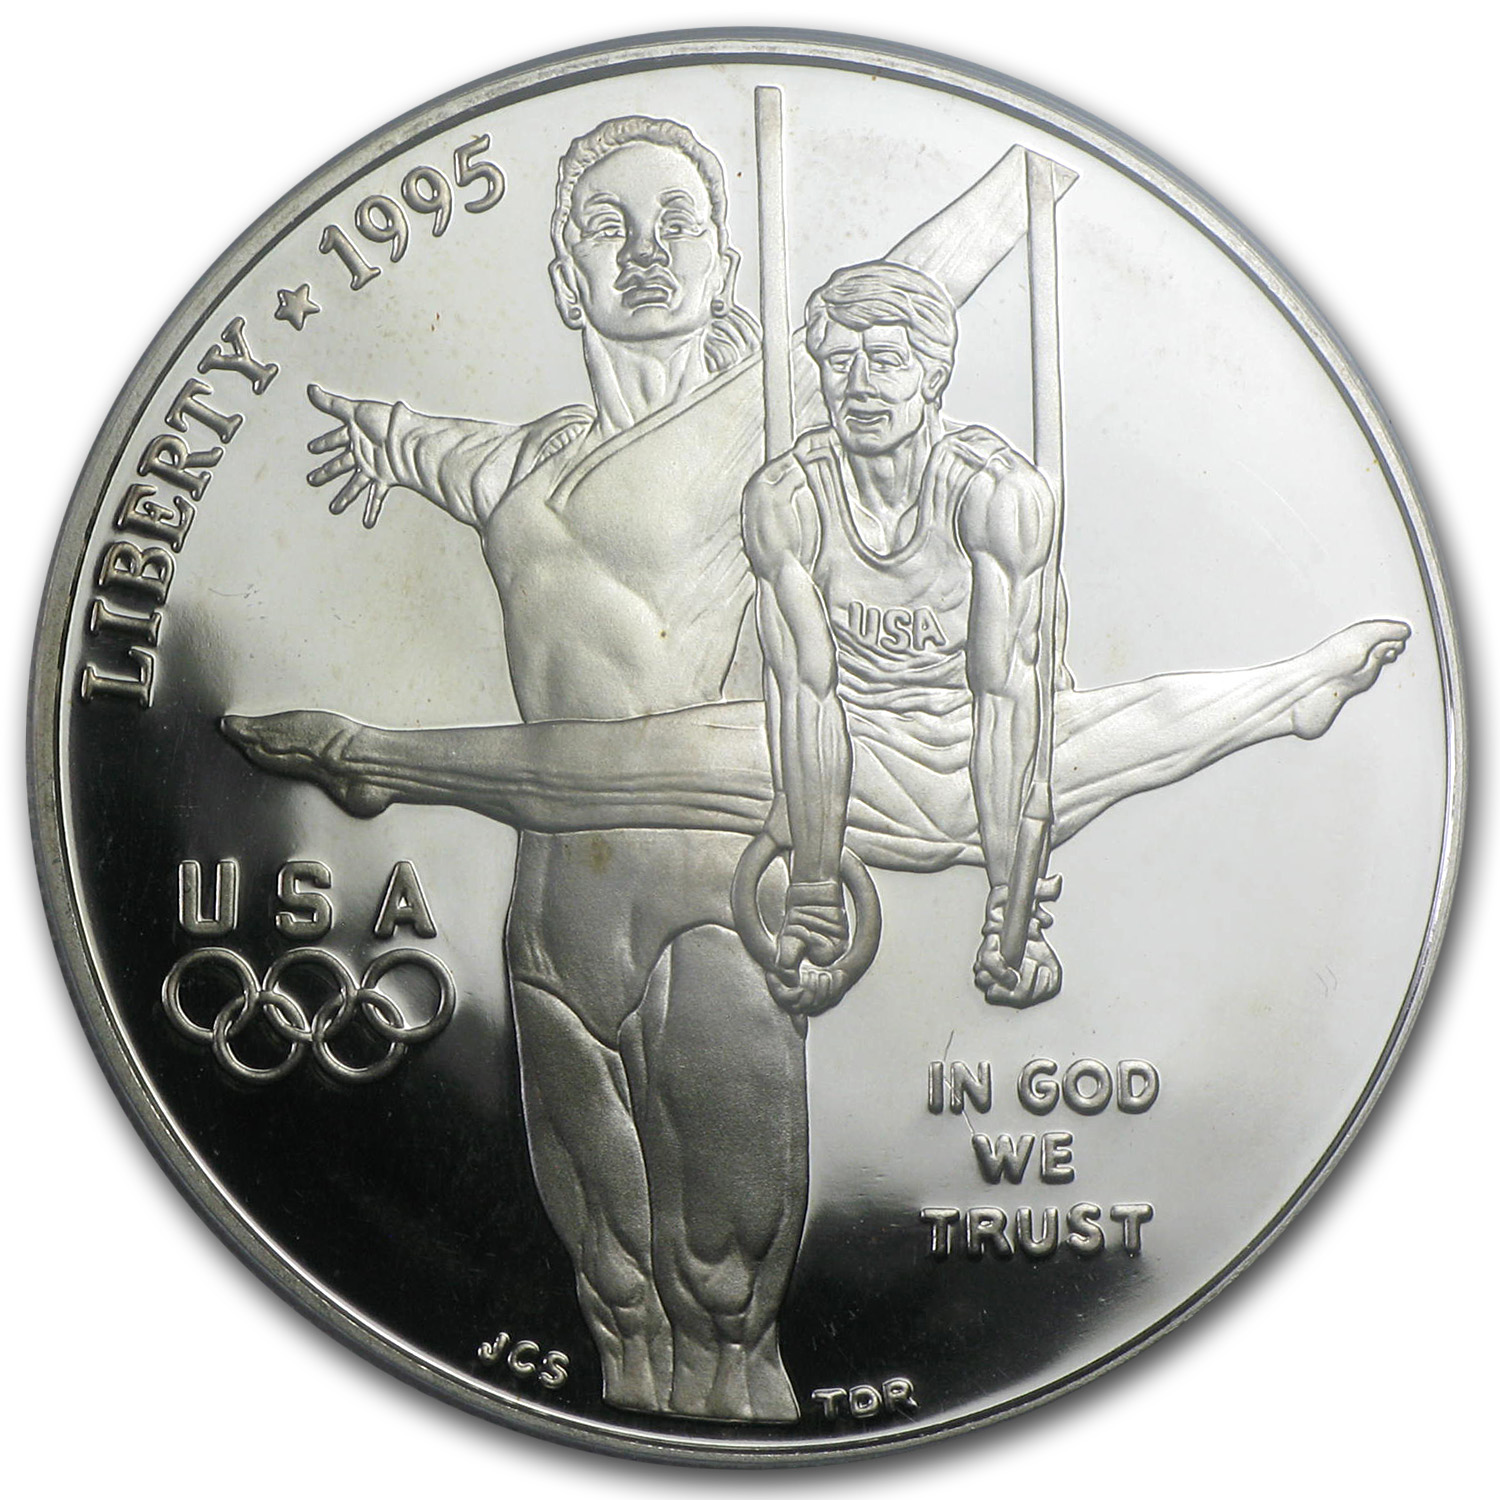 1995-P Olympic Gymnast $1 Silver Commemorative PR-69 PCGS